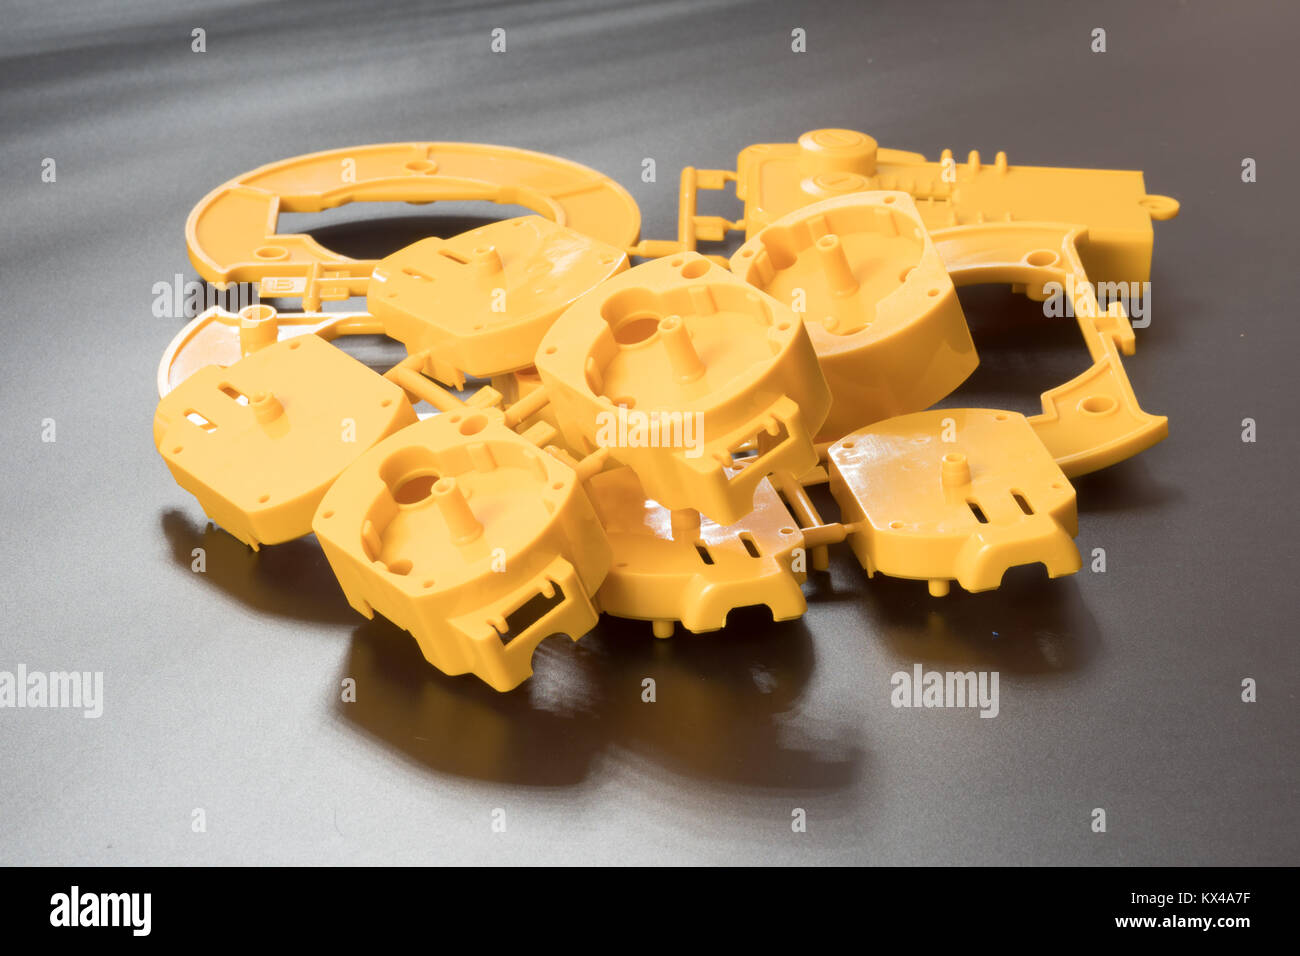 Industrial injection molding press  the manufacture of plastic parts - Stock Image